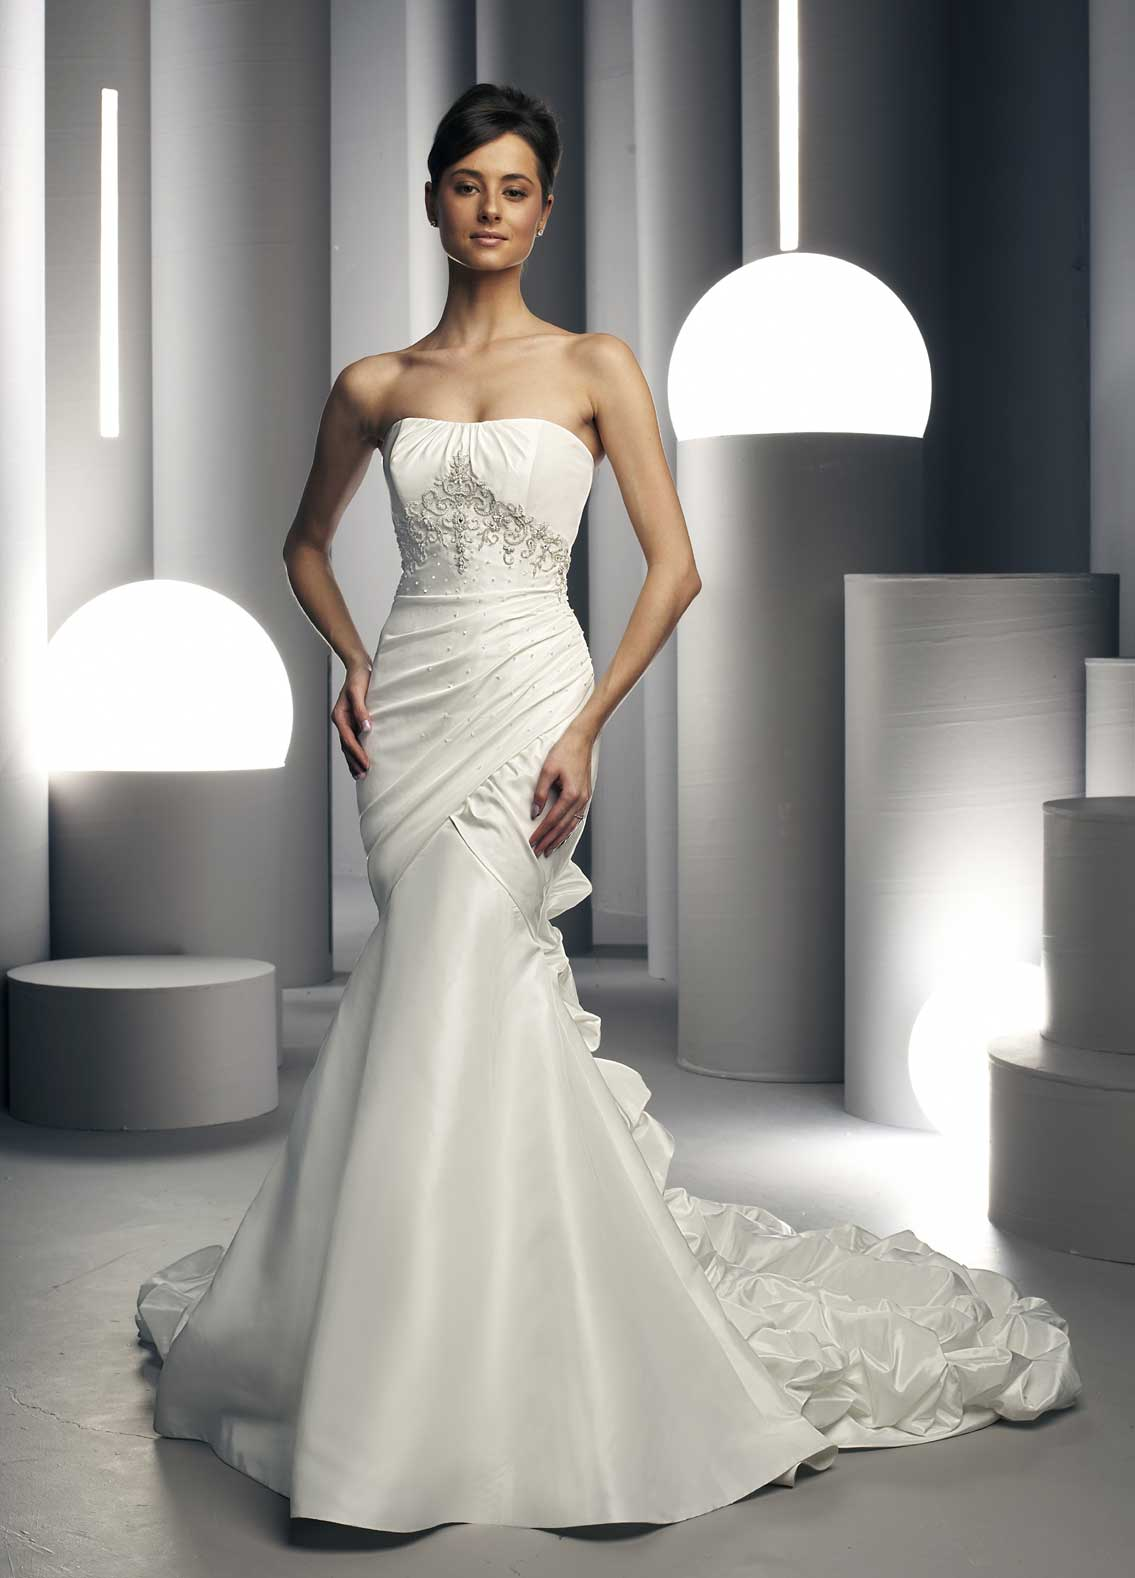 White bridal 39 s dresses designs fancy and elegant for Wedding dresses that are white